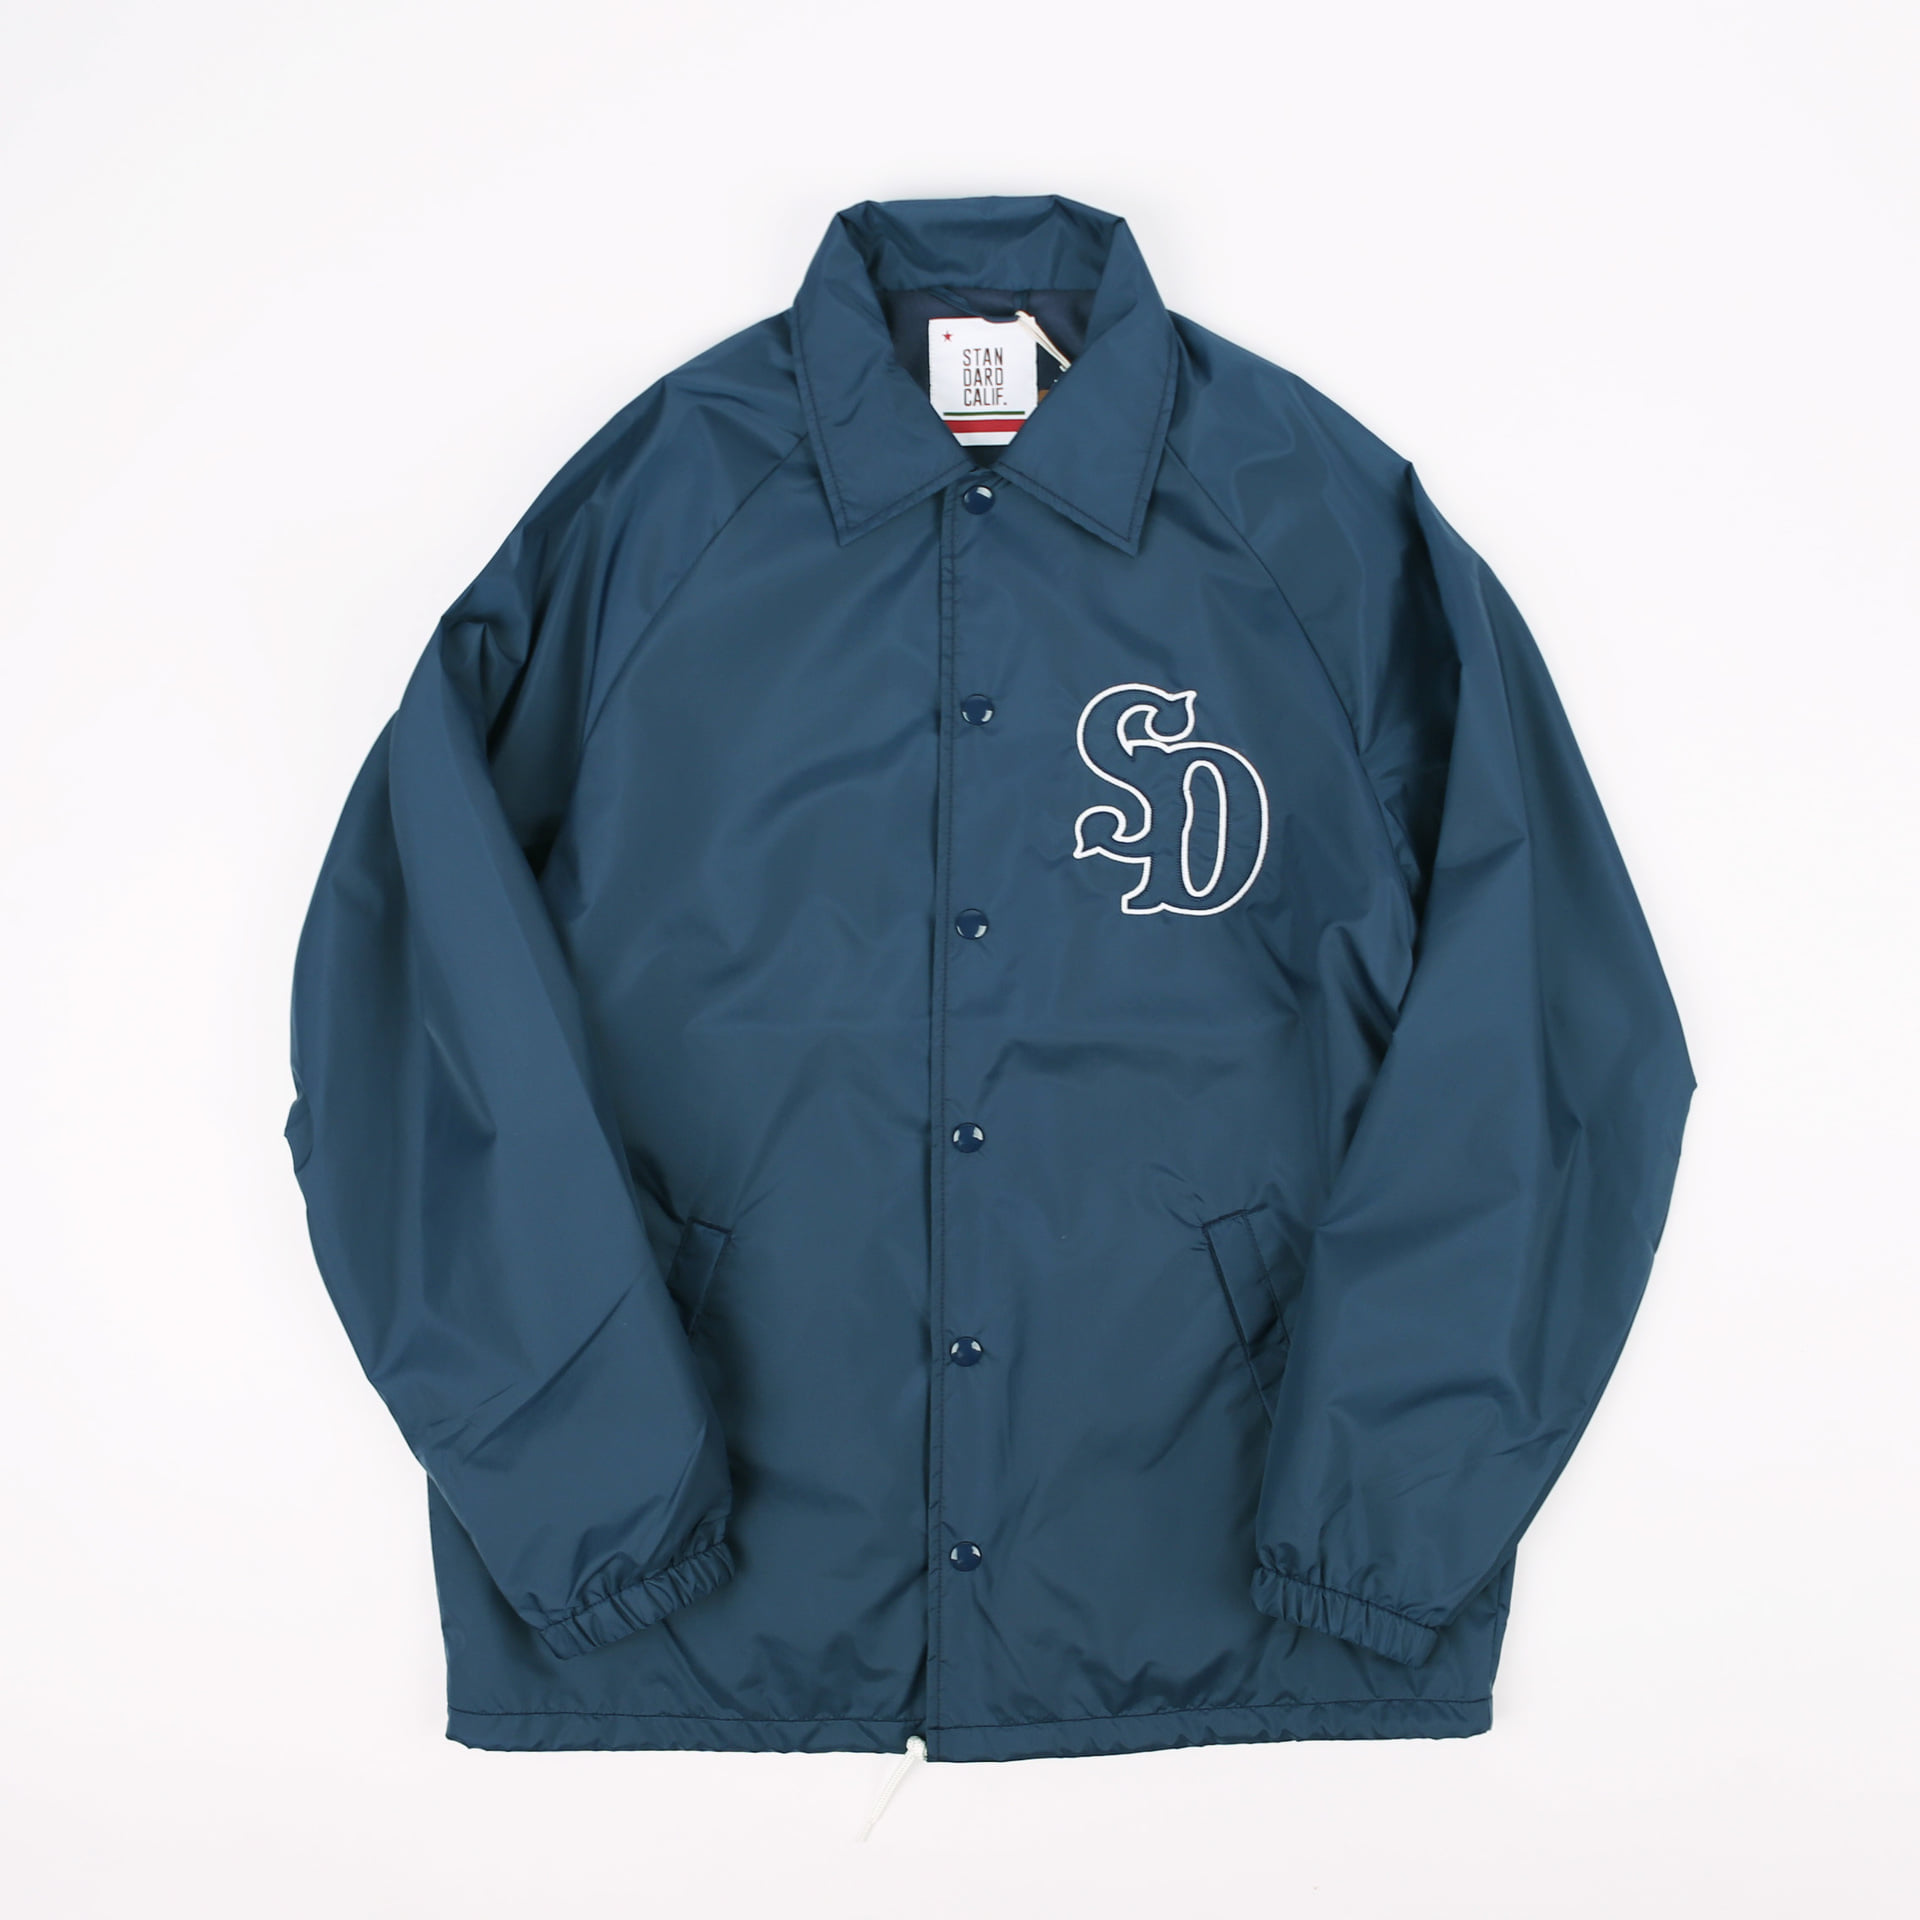 SD Coach Jacket Type 3 (Navy)